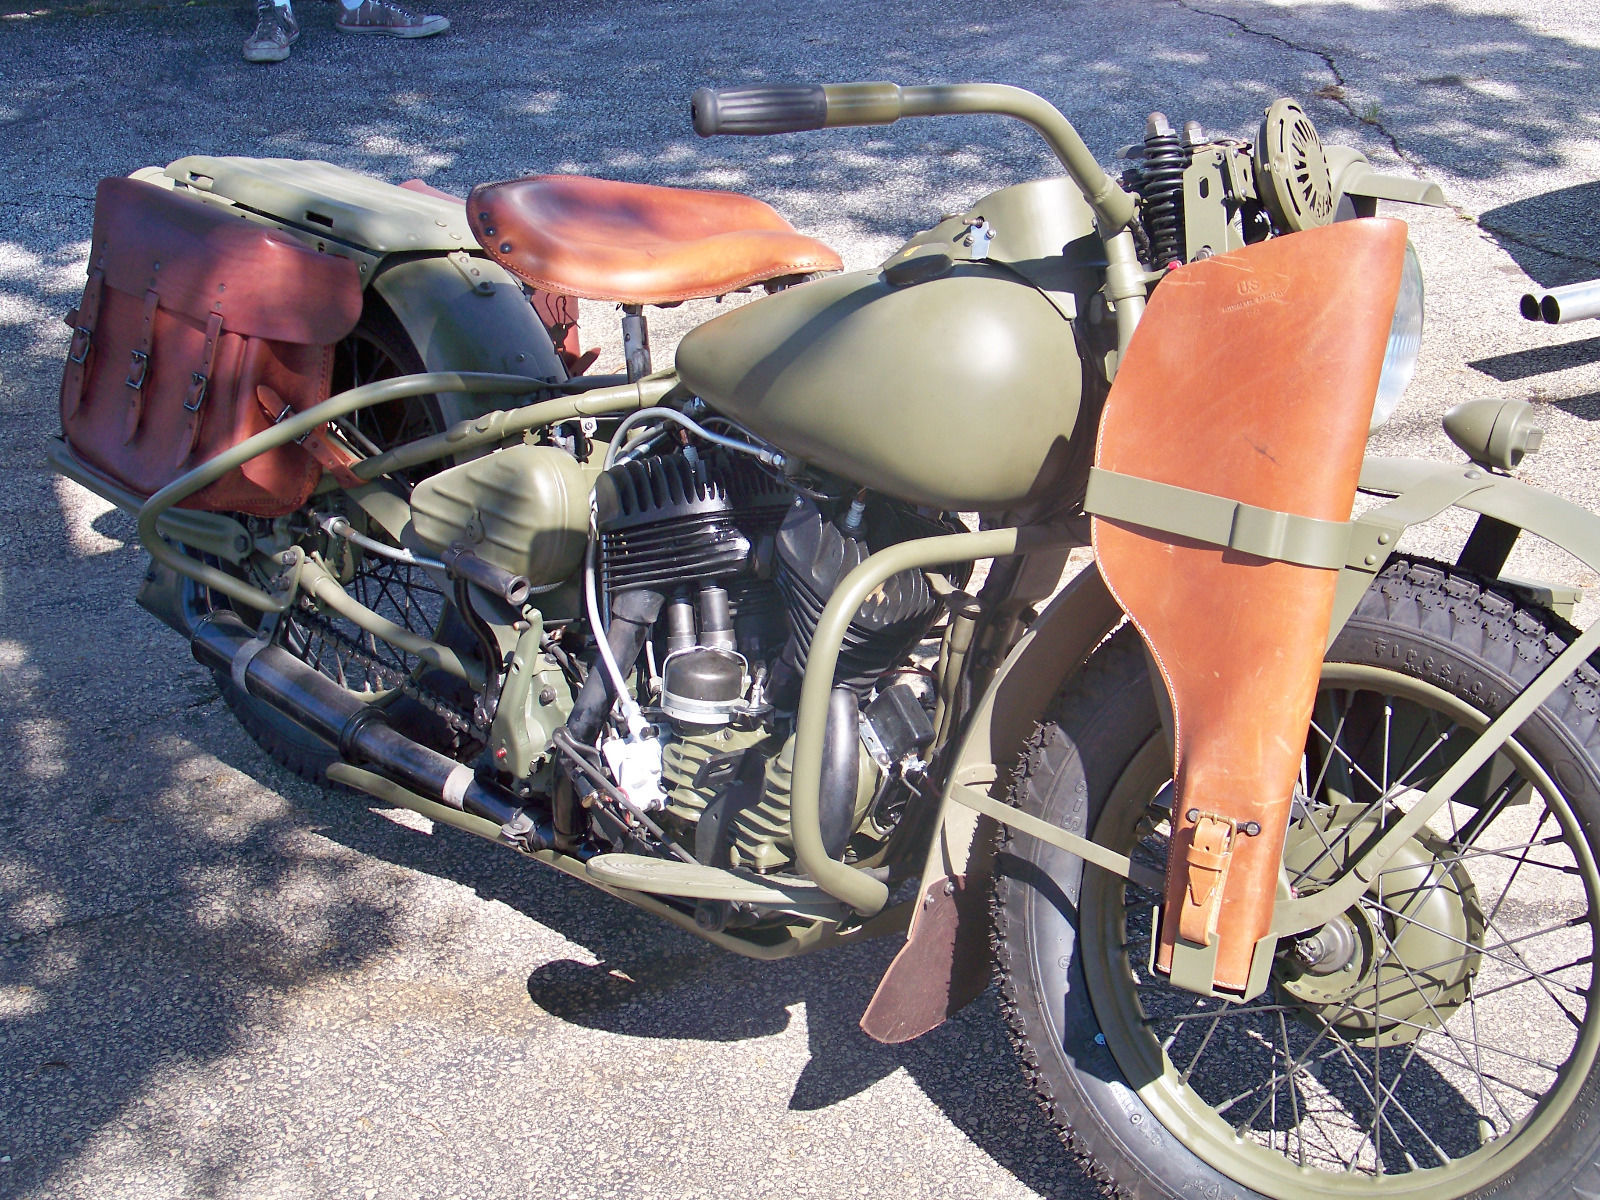 This restored Harley Davidson WLA is complete with correct equipment.